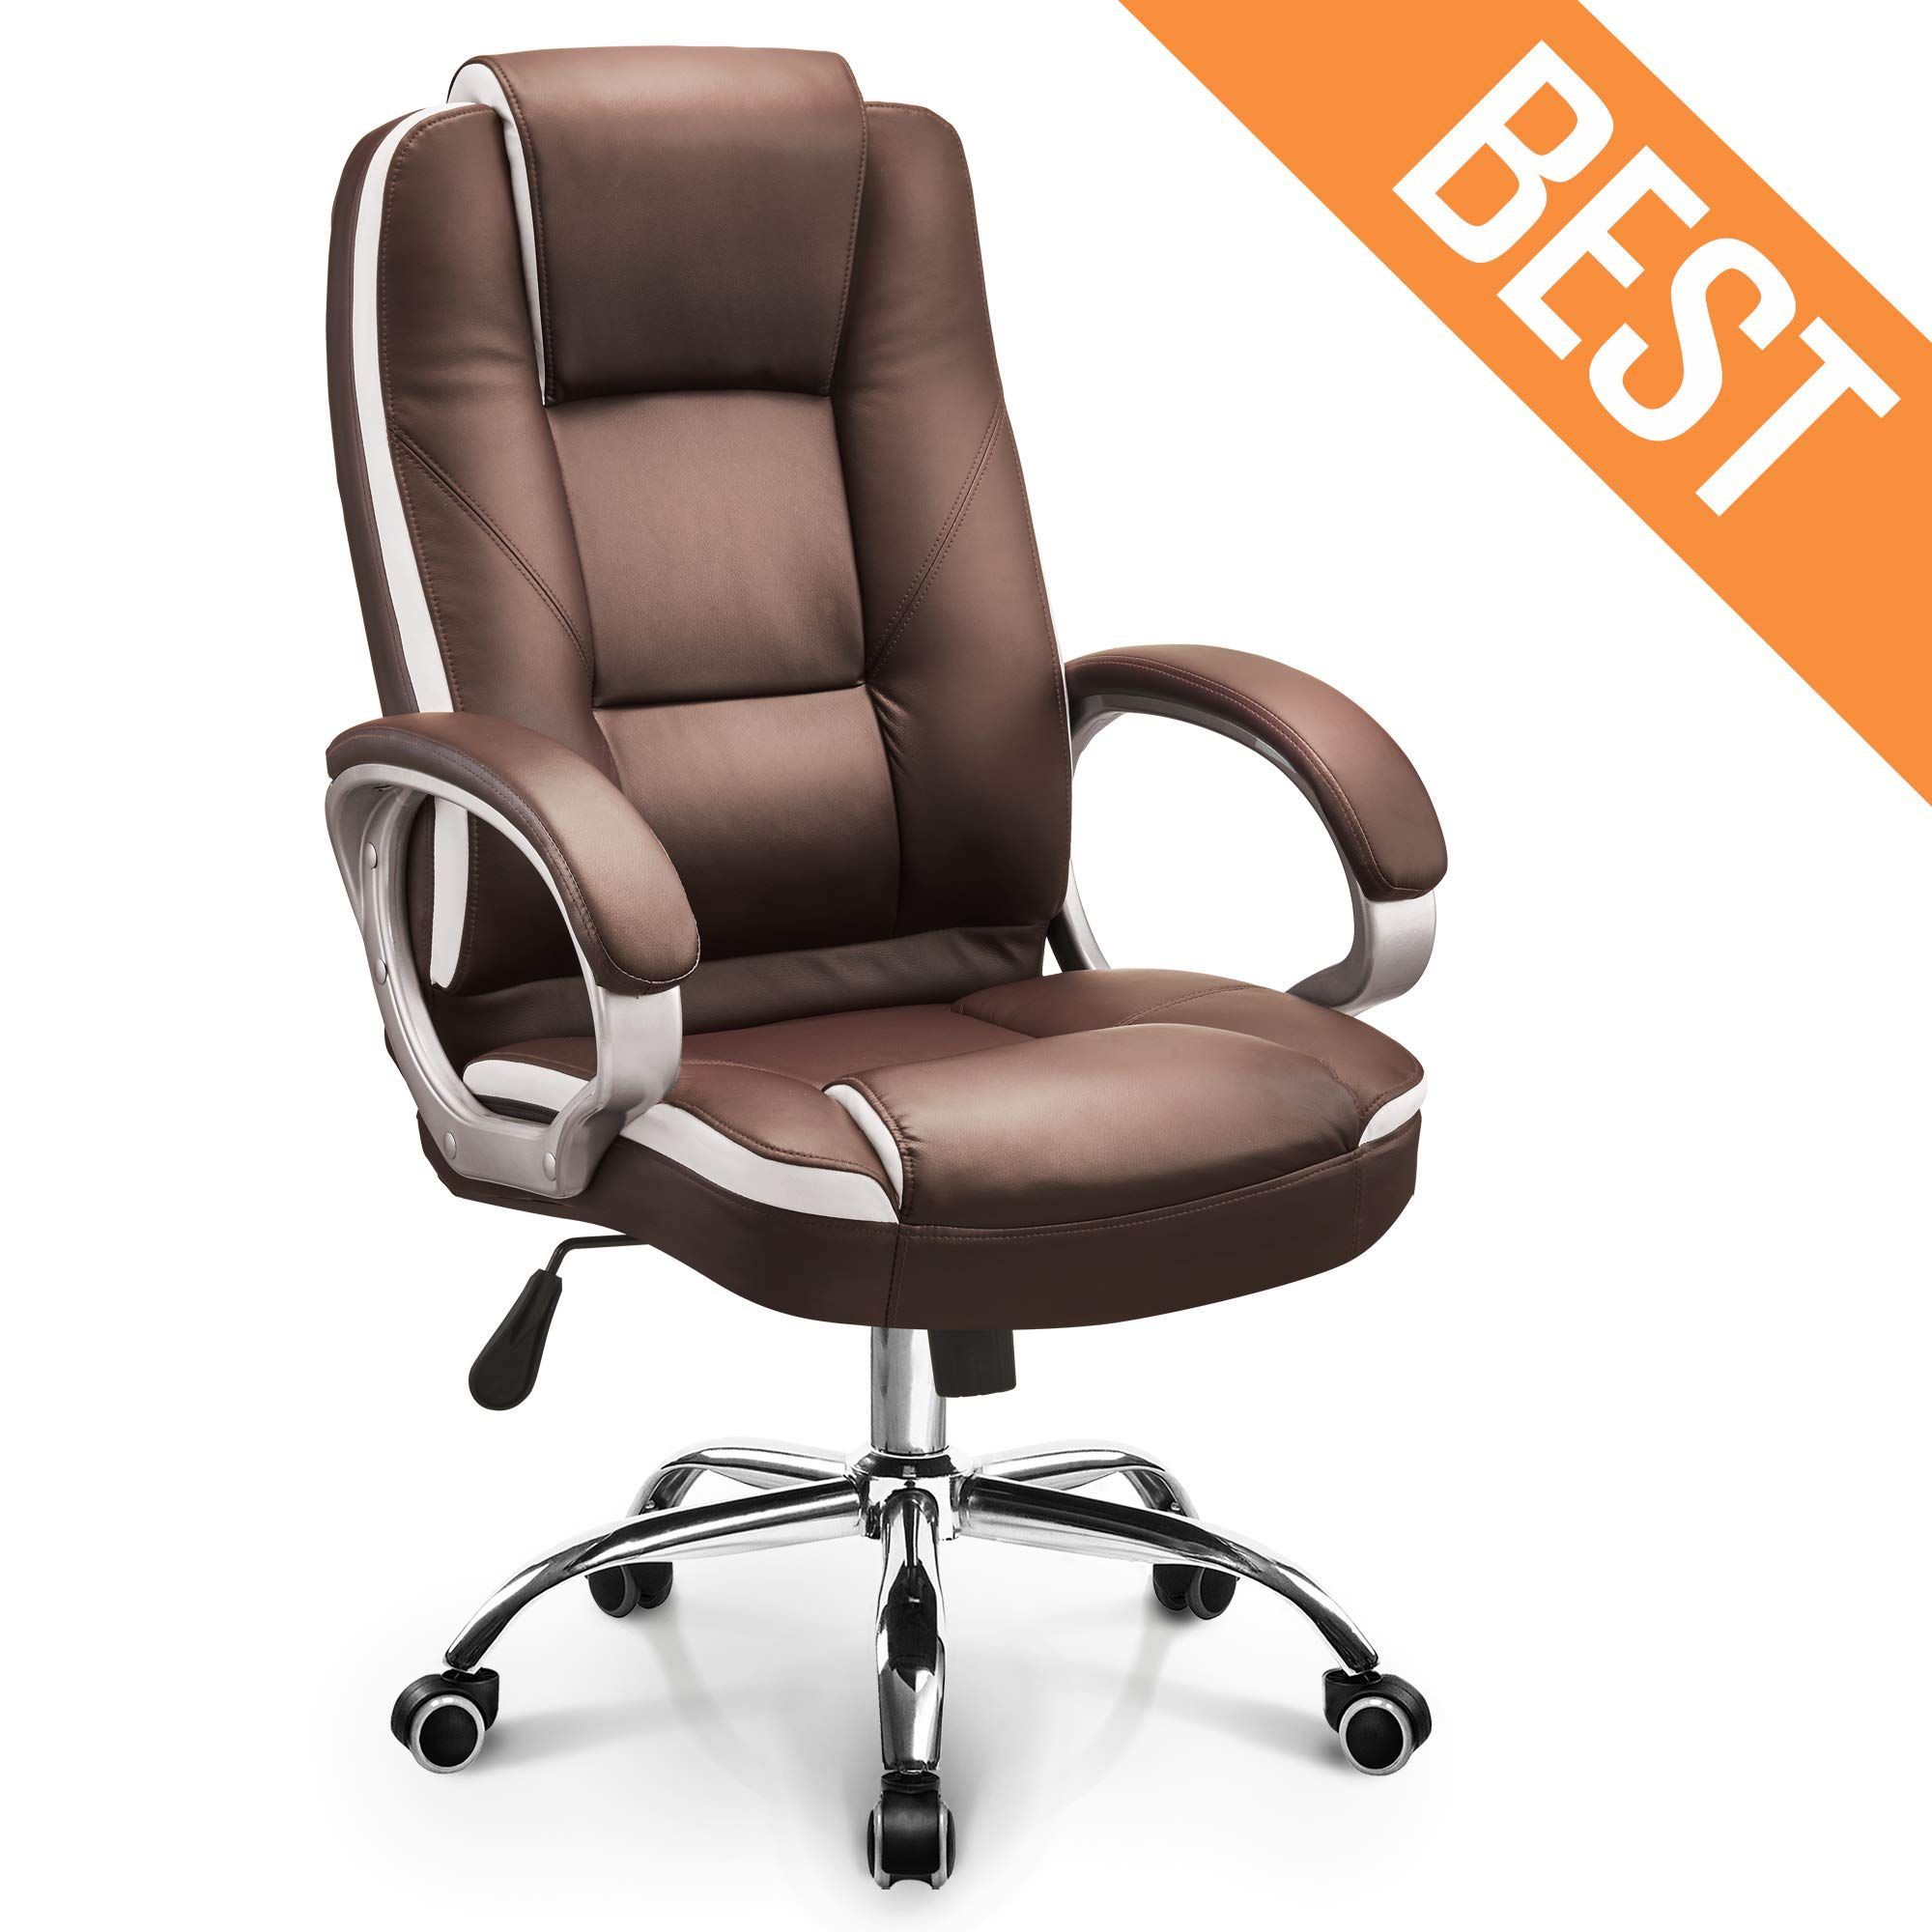 Neo Chair Office Chair Computer Desk Chair Gaming